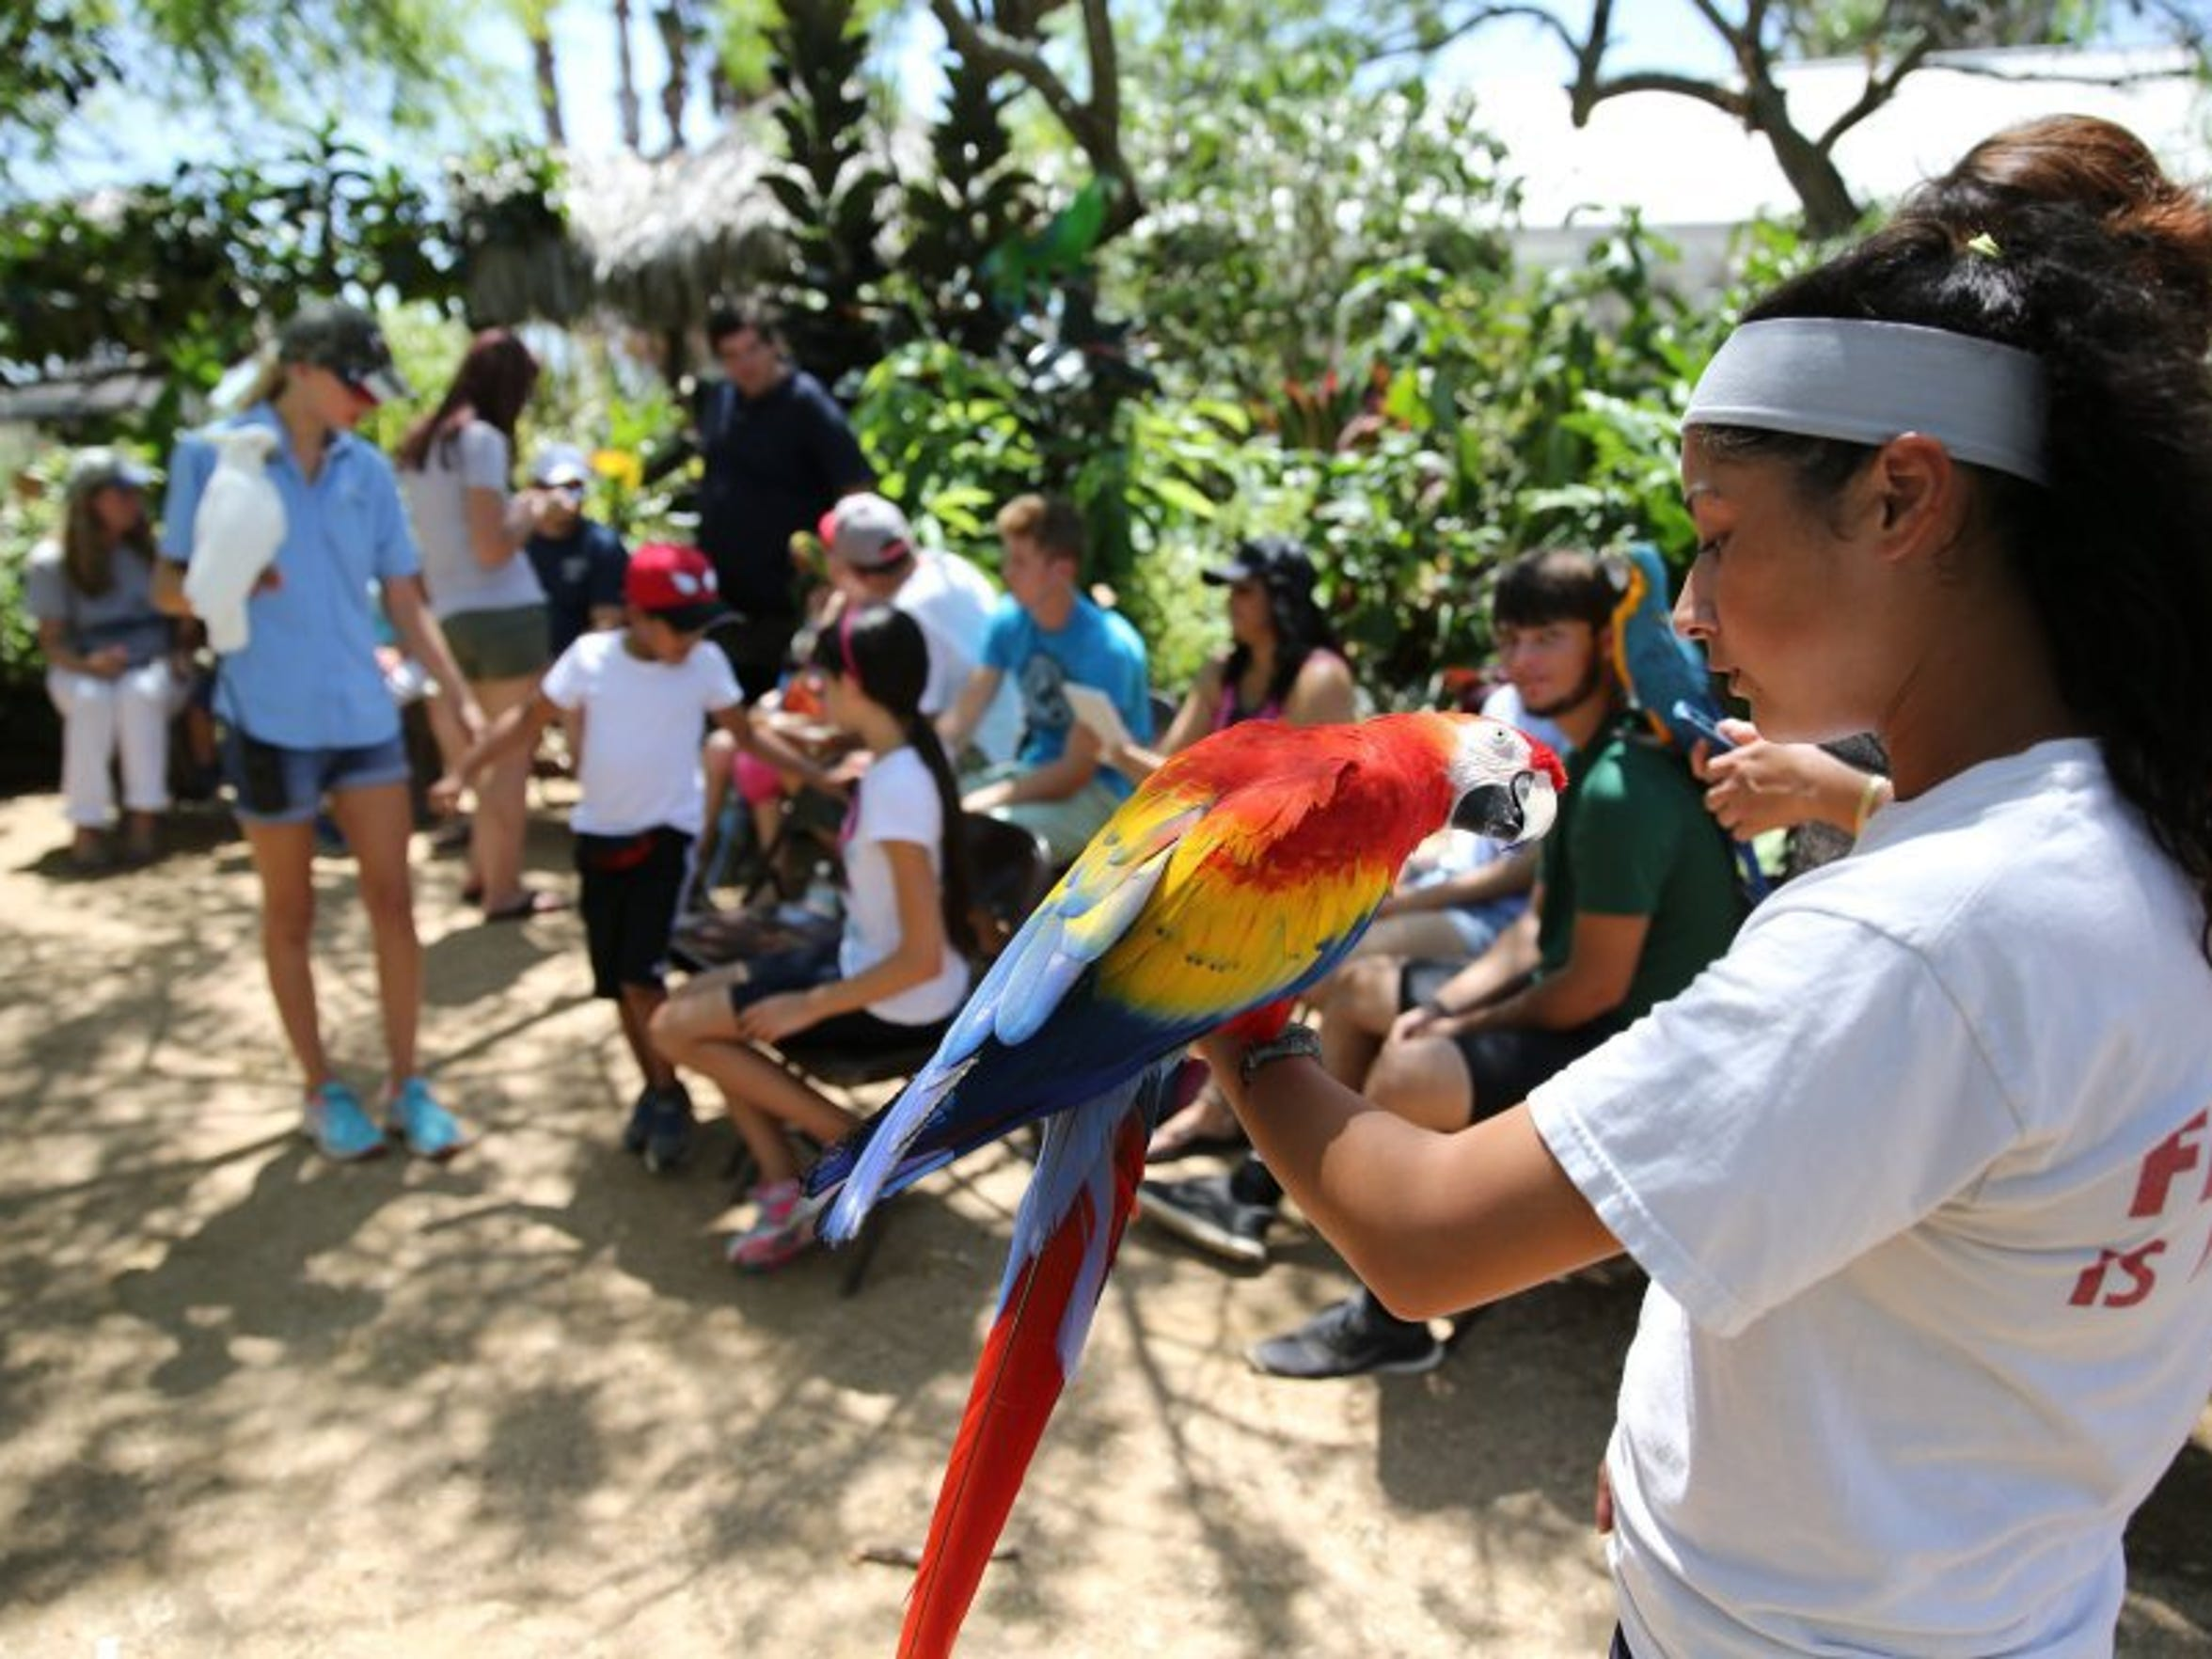 CALLER-TIMES file PARROTS: The South Texas Botanical Gardens & Nature Center's Parrot Talk will be open to guests at 1:30 p.m., Fridays, Saturdays and Sundays, in the Tropical Garden, behind the Bromeliad House, 8545 S. Staples St. Cost: Free with admission. Information: 361-852-2100, www.stxbot.org.